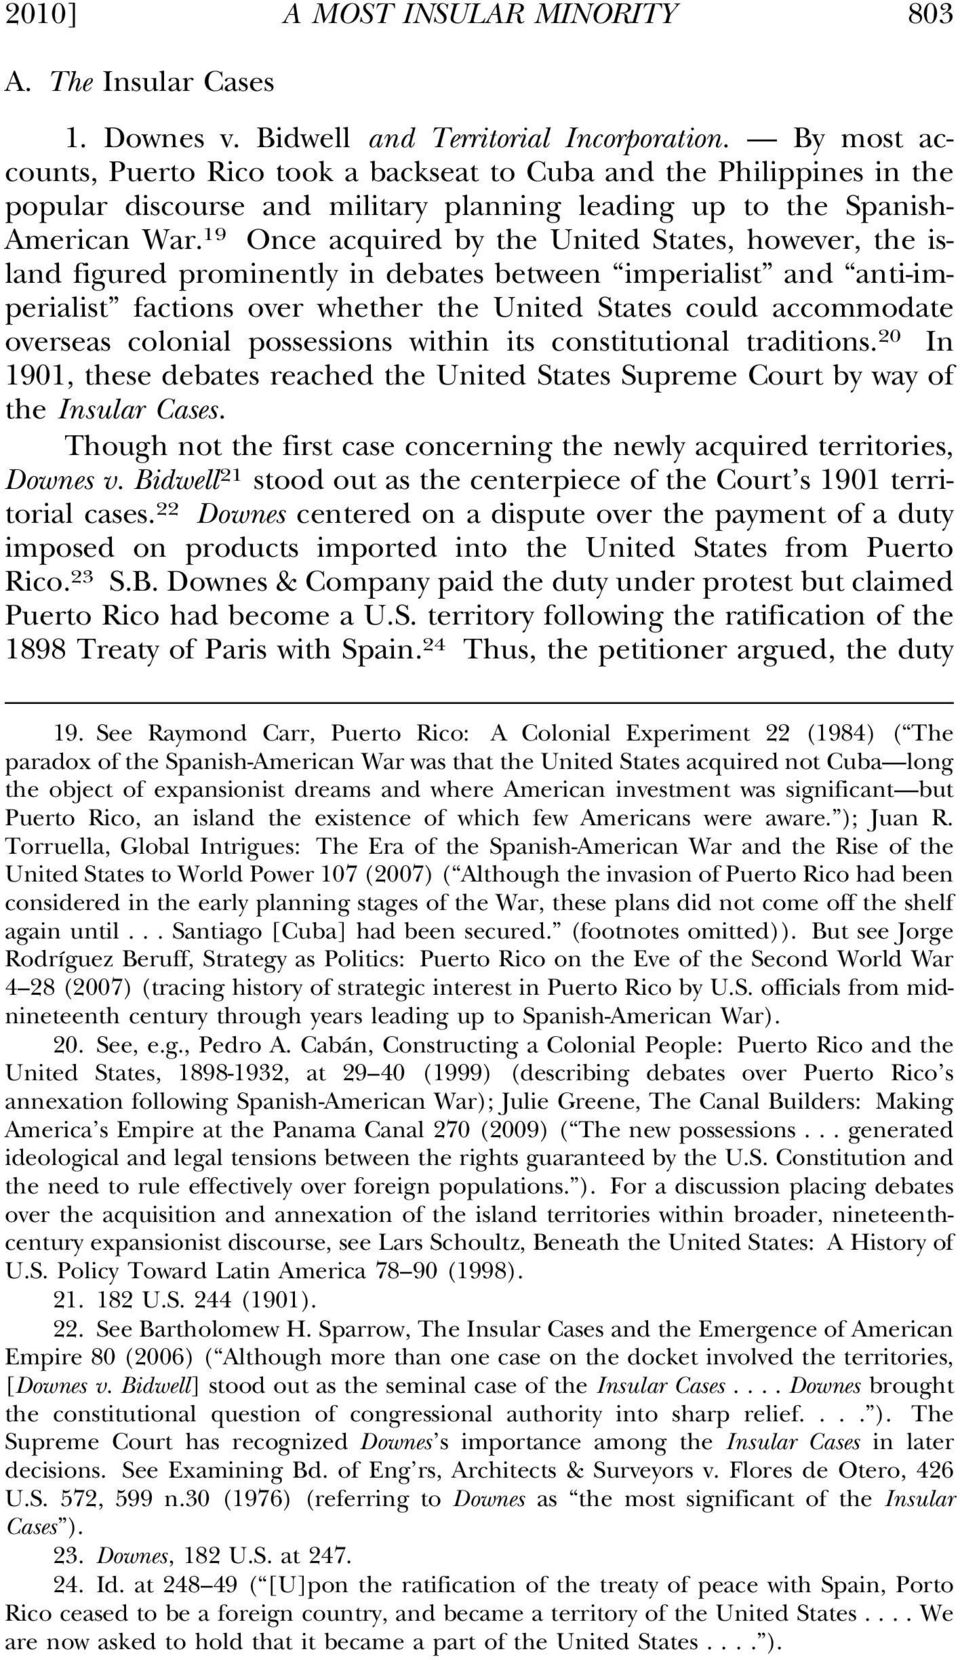 19 Once acquired by the United States, however, the island figured prominently in debates between imperialist and anti-imperialist factions over whether the United States could accommodate overseas